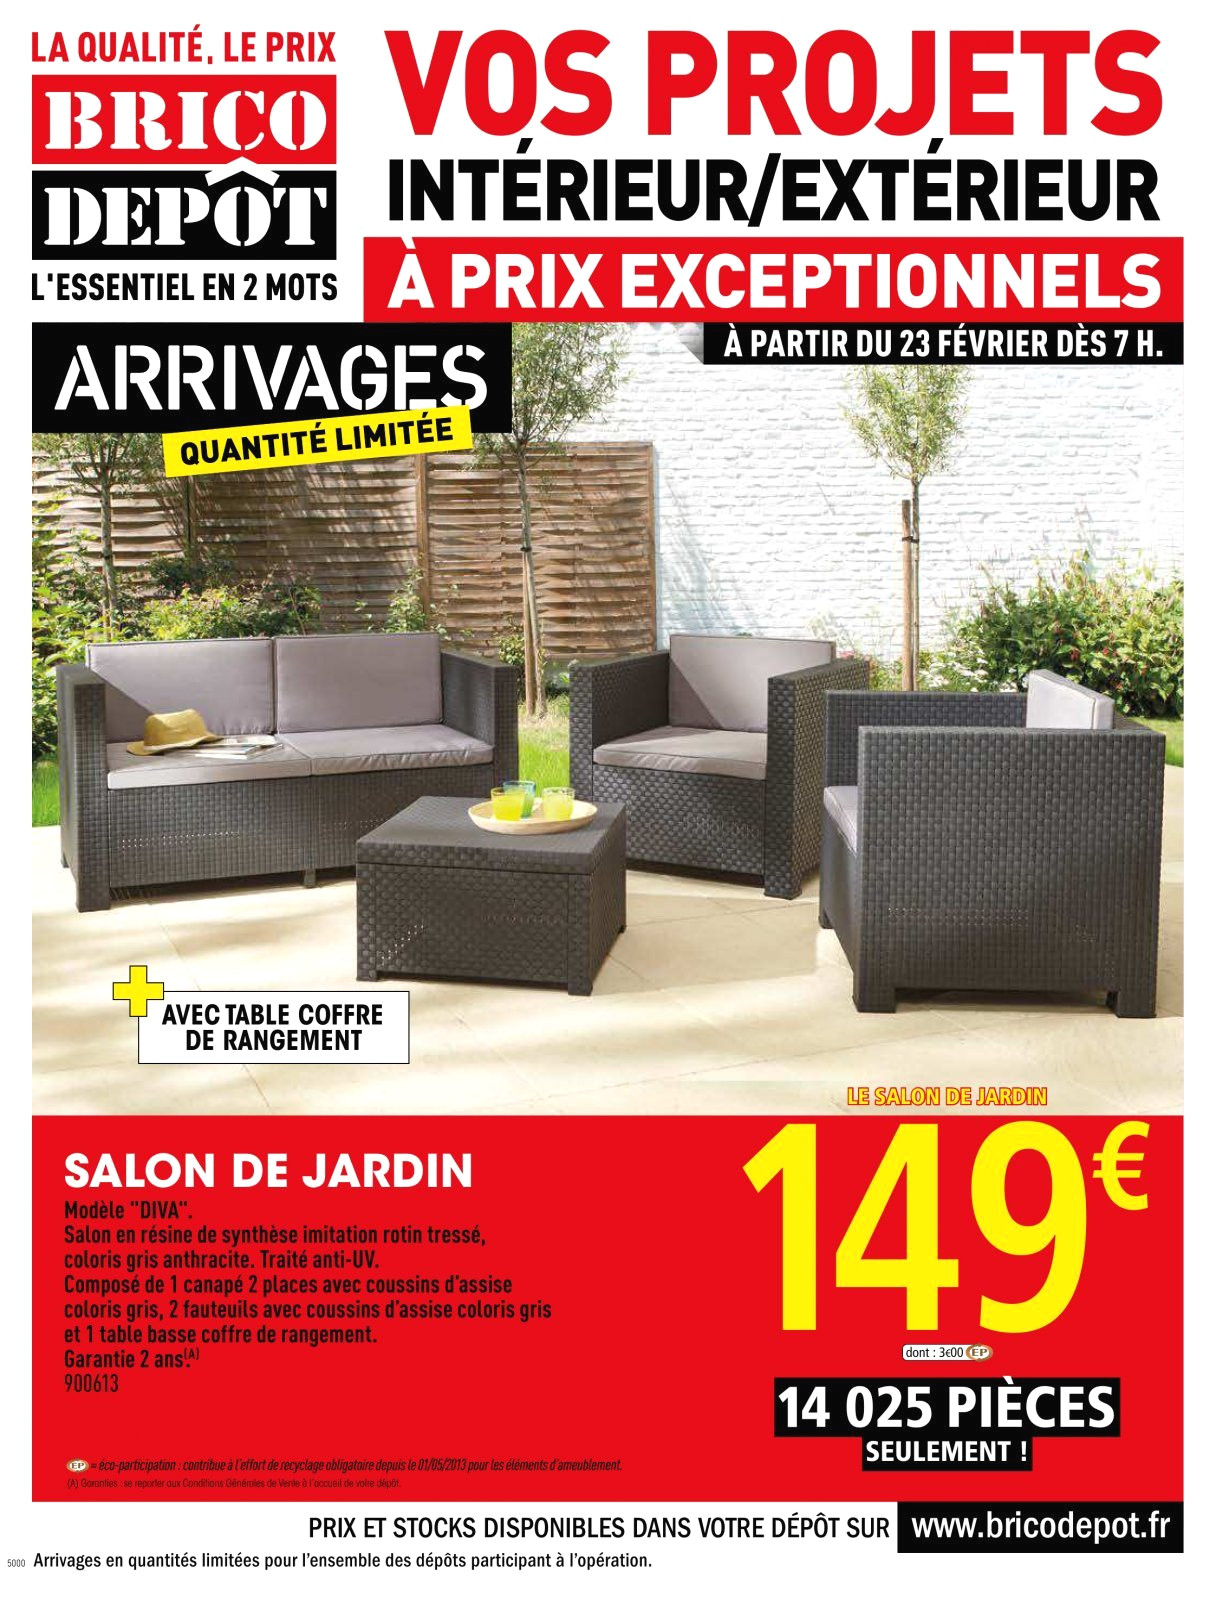 Brico Depot Cambrai Unique Collection Brico Dpt Plour Sur Rance Les Bons Plans Brico Depot with Brico Dpt